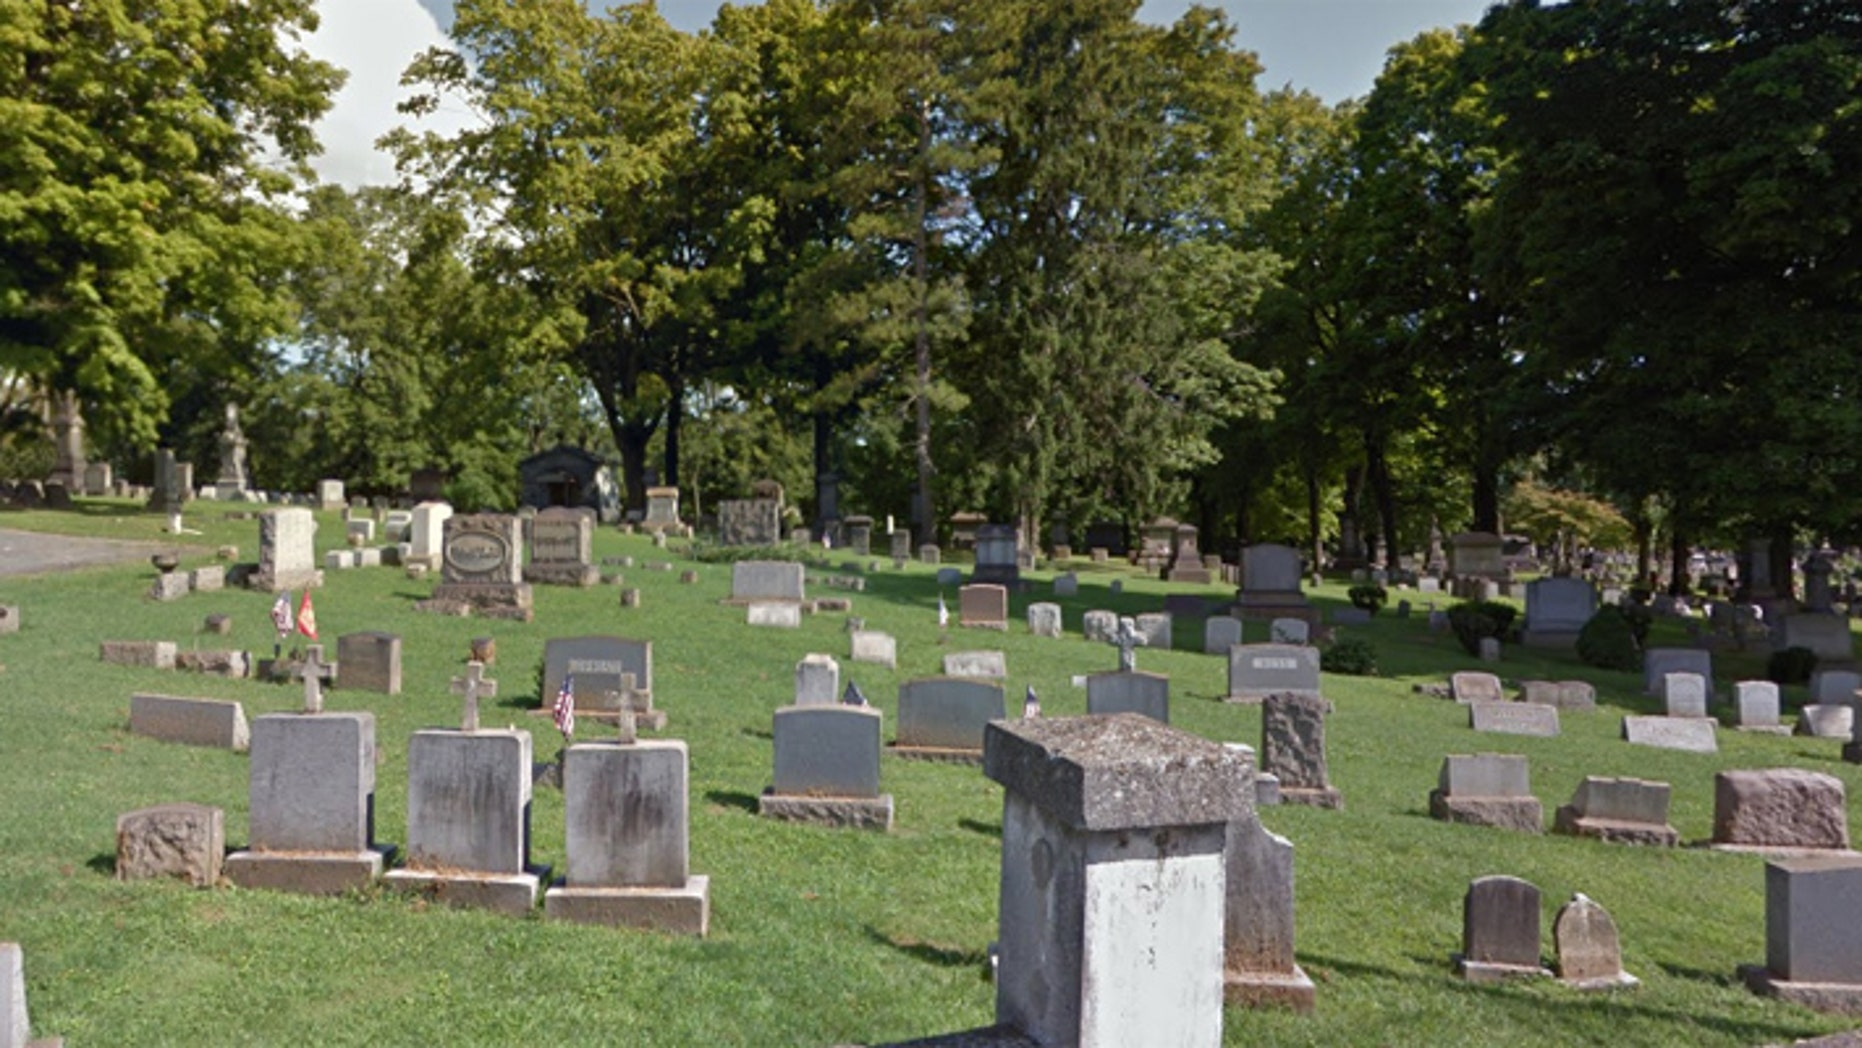 Police said a substitute teacher was found having sex with a student at Easton Cemetery.